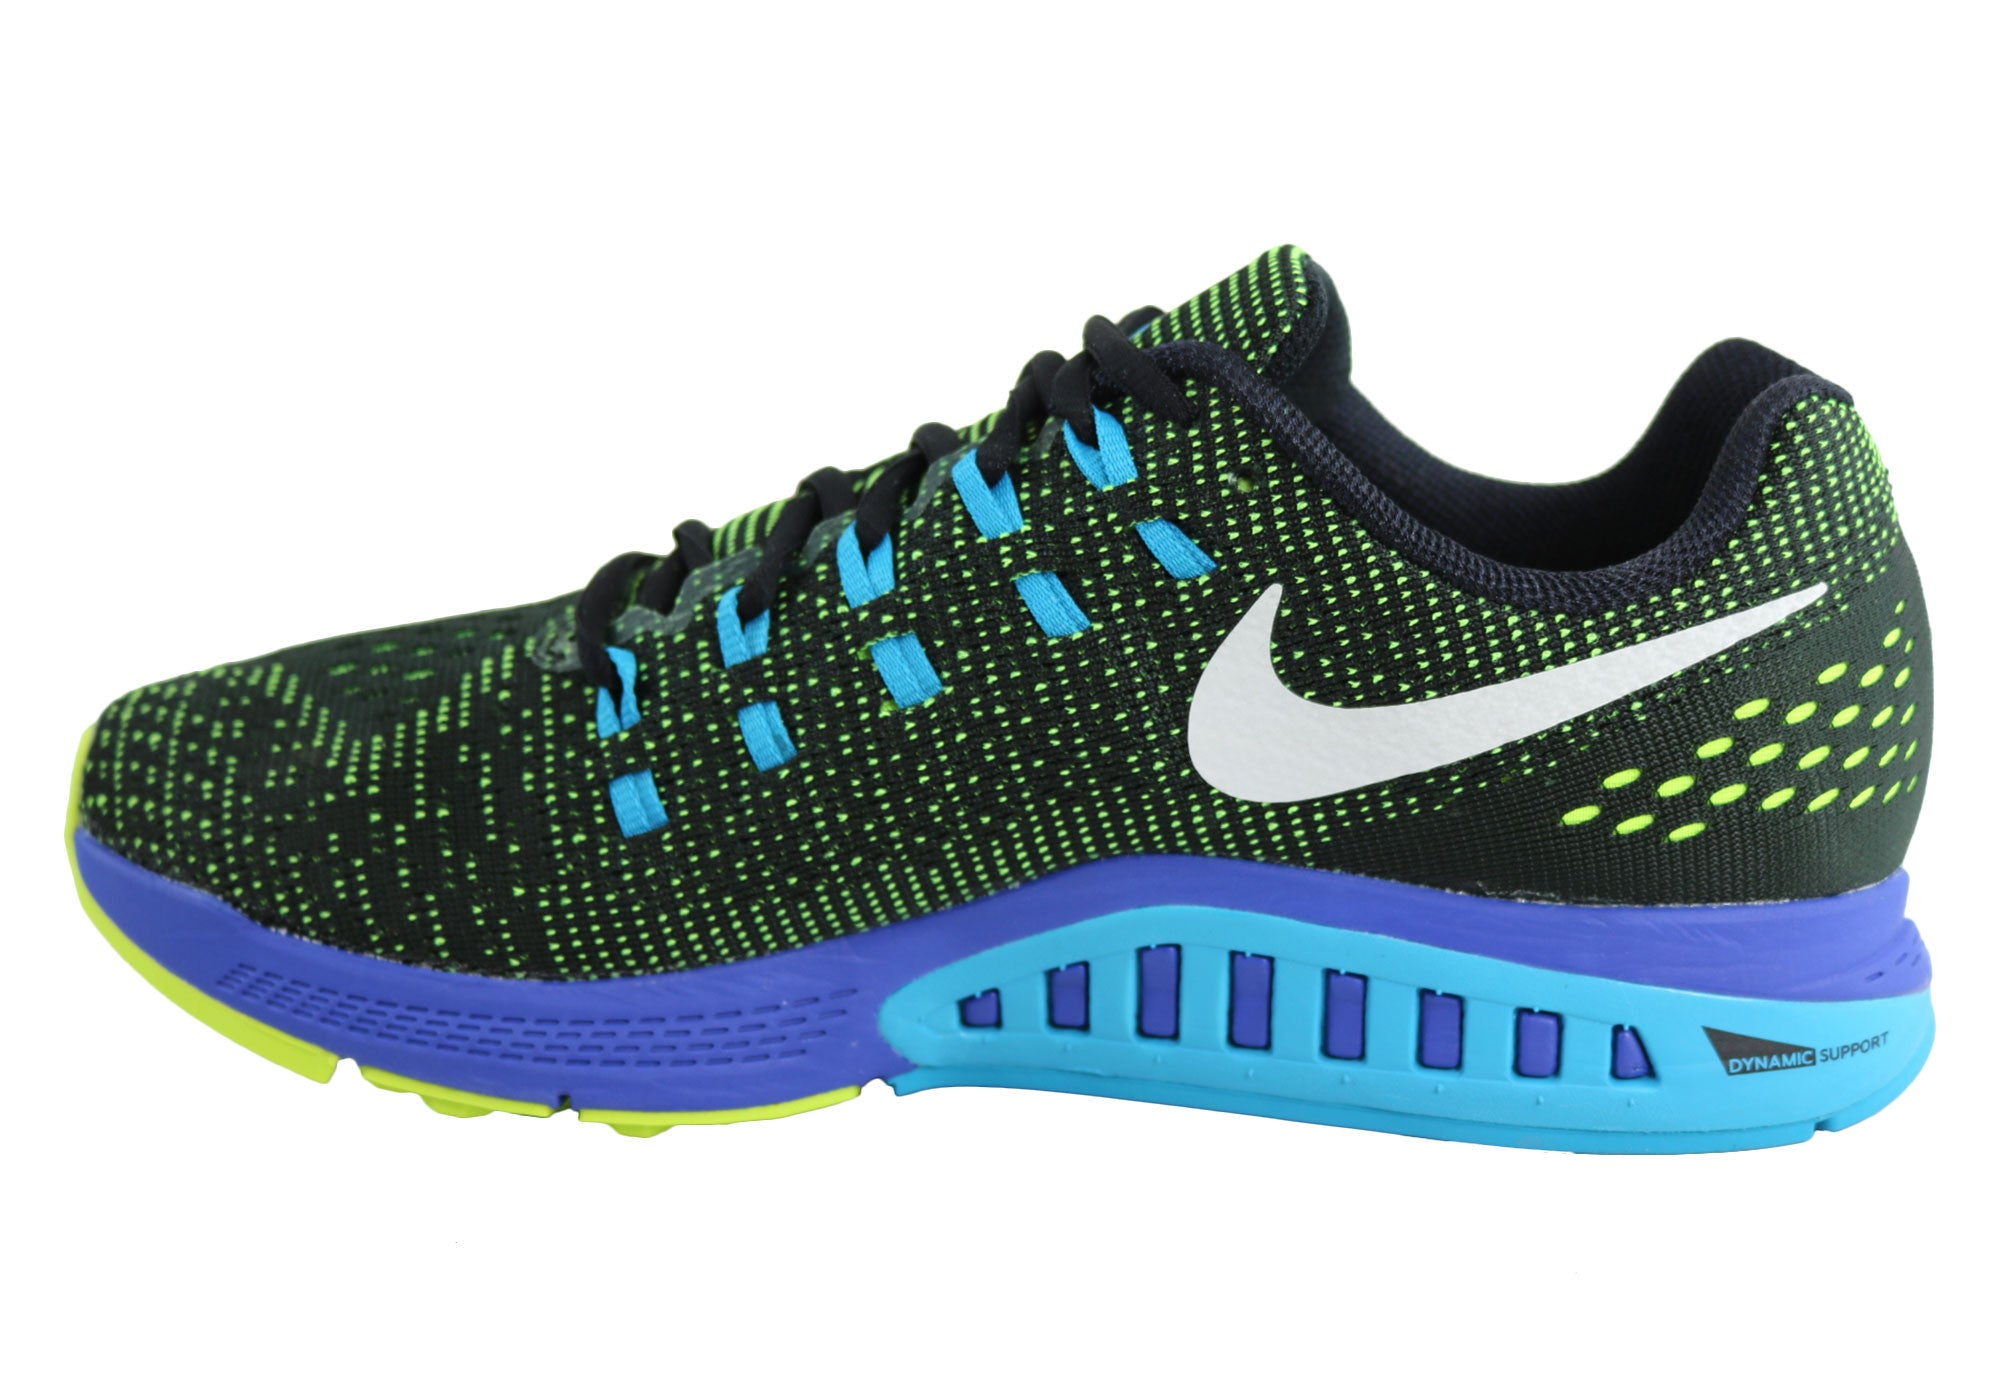 quality design 299a5 45285 ... get new nike air zoom structure 19 wide mens cushioned running sport  101da 5fc4a